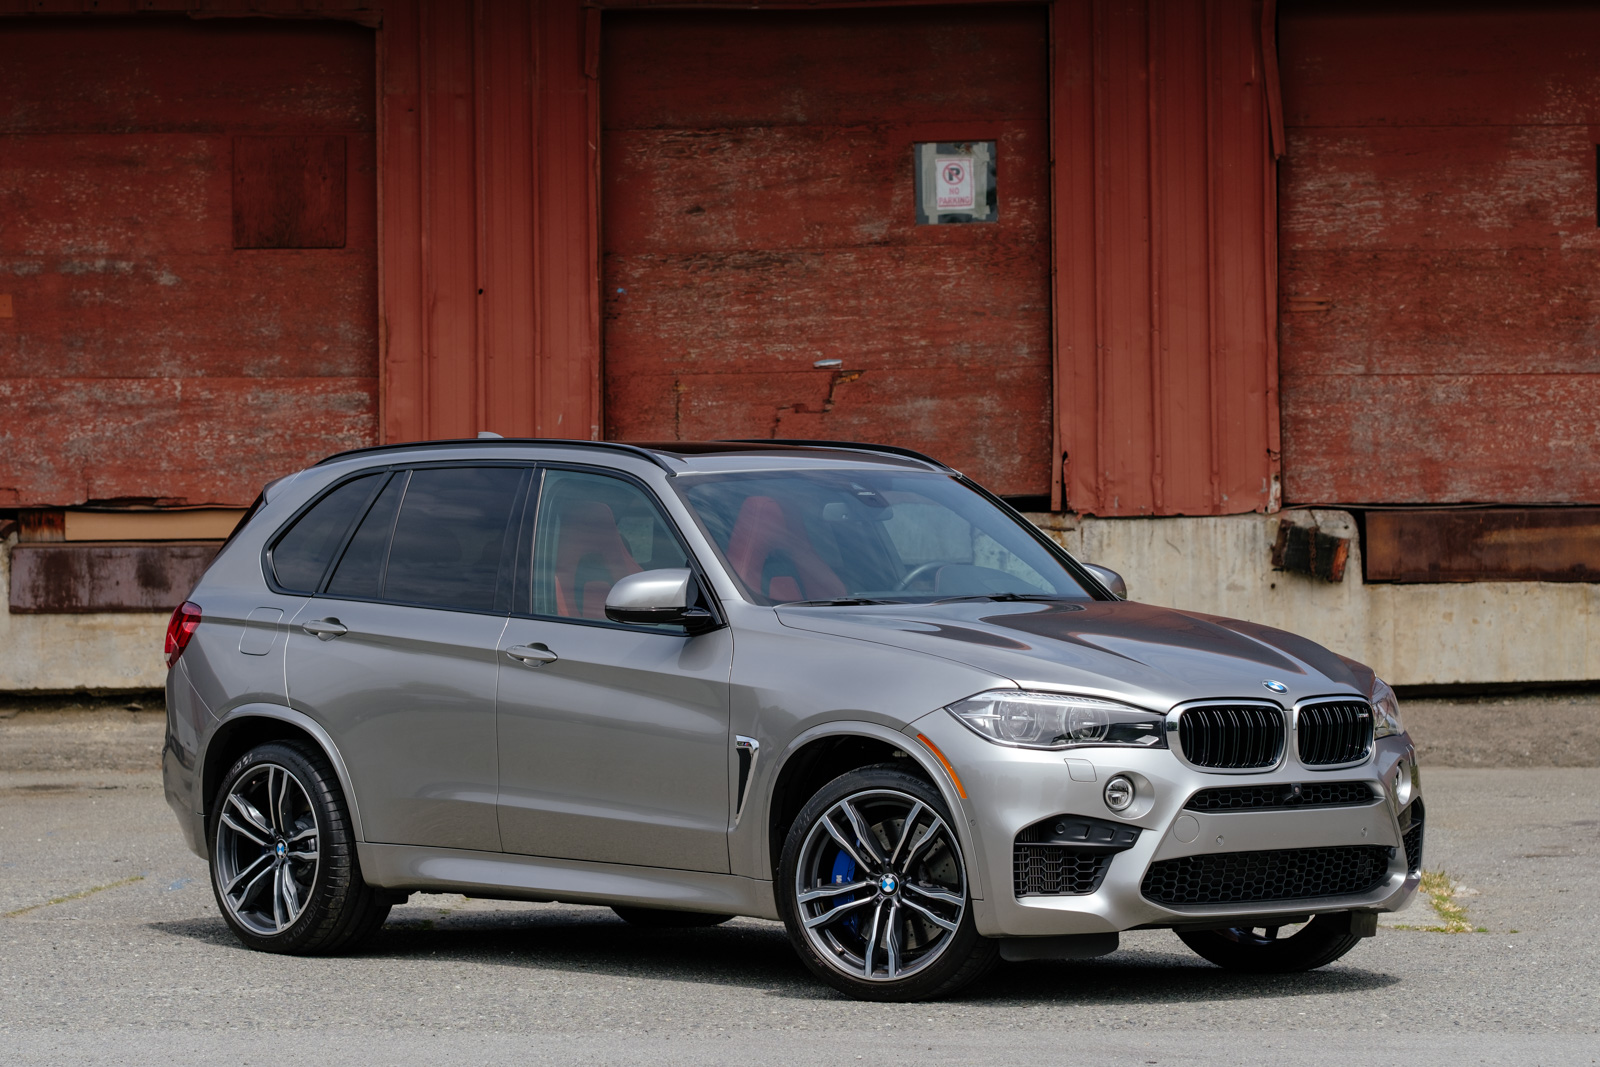 2017 bmw x5 m for sale in victoria bc at silver arrow. Black Bedroom Furniture Sets. Home Design Ideas